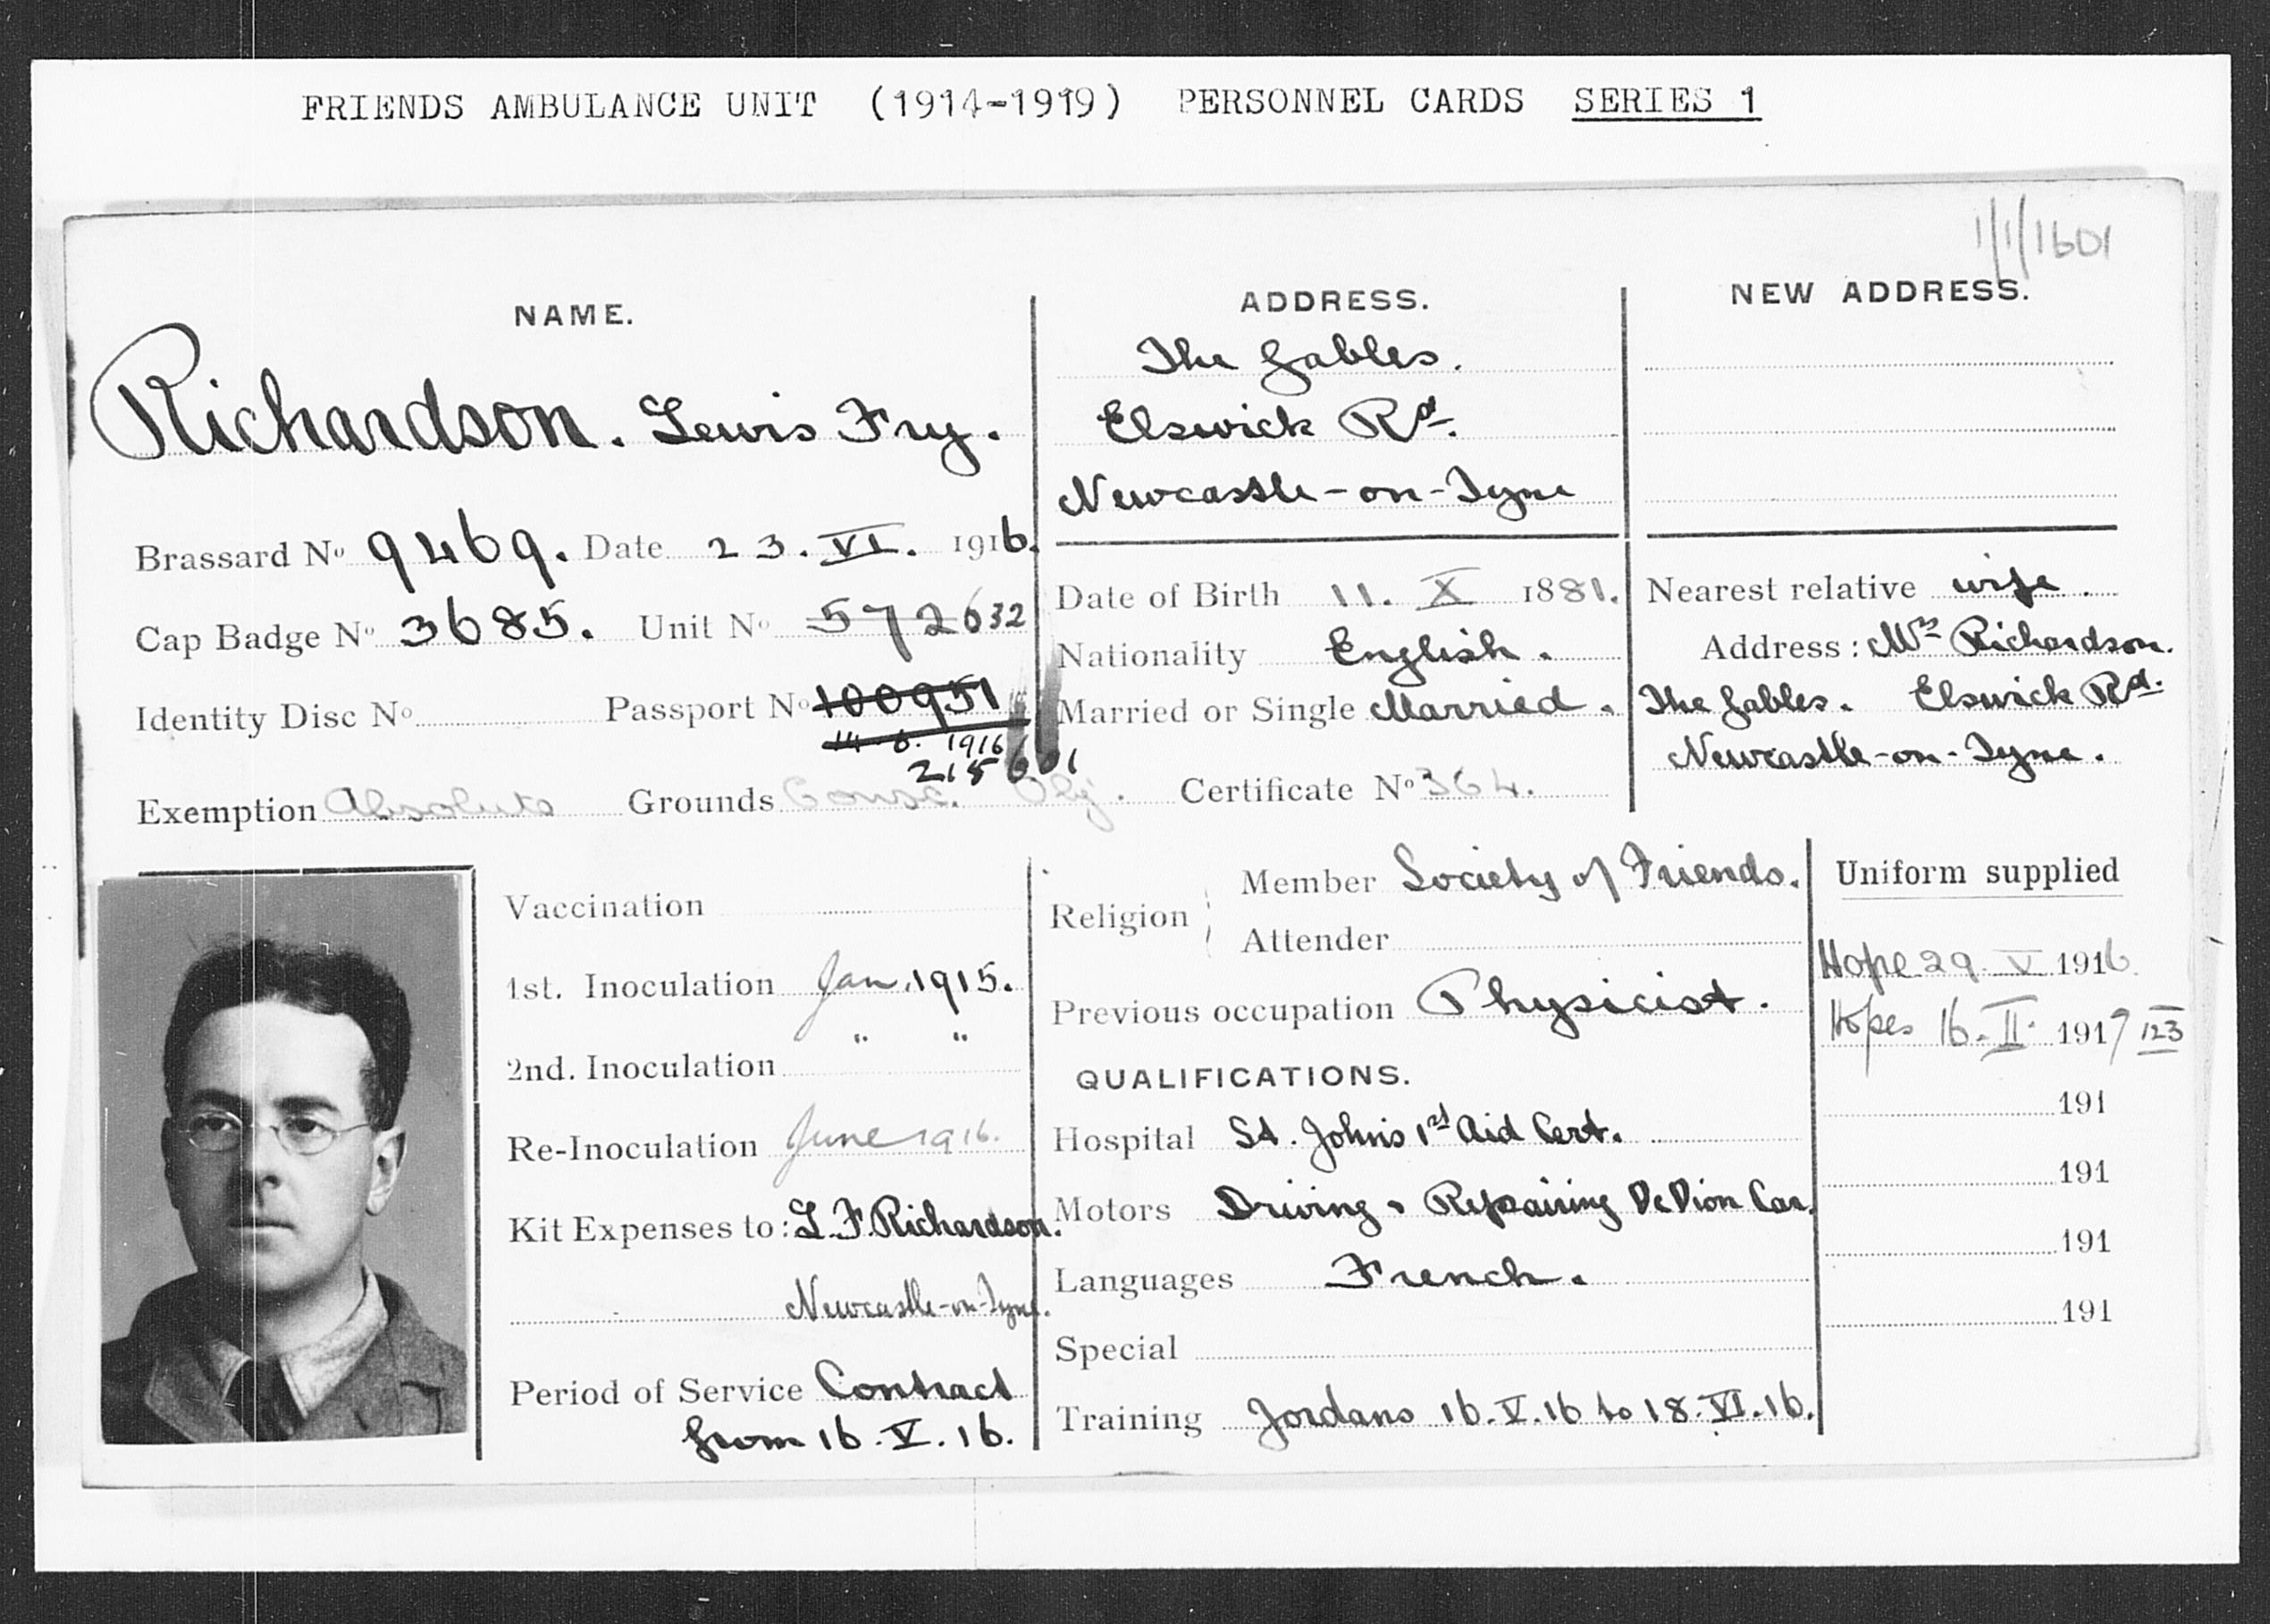 Personnel card for Lewis Fry Richardson (http://fau.quaker.org.uk)